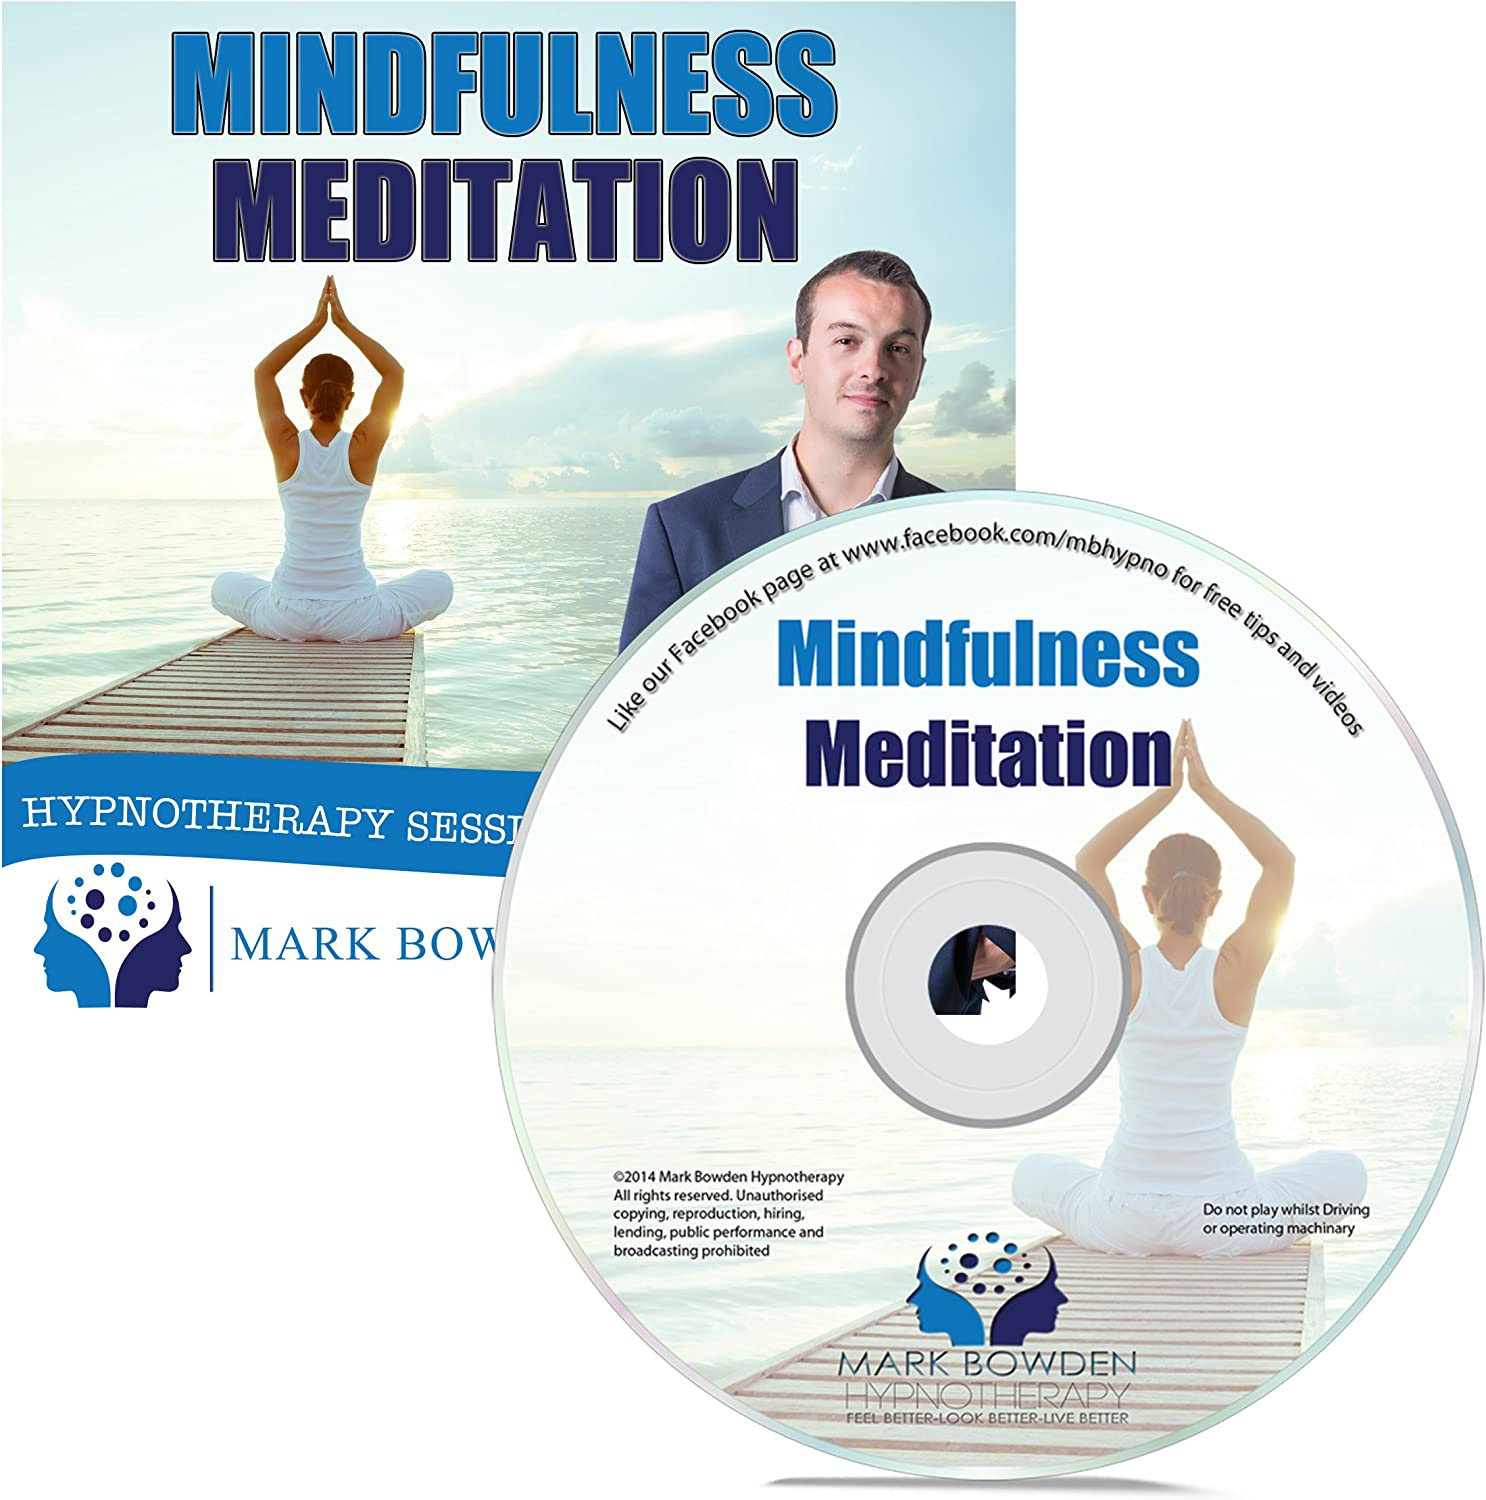 Mindfulness Meditation Self Hypnosis CD / MP3 and APP (3 IN 1 PURCHASE!) - A Guided Relaxation CD / Guided Meditation CD to help you relax